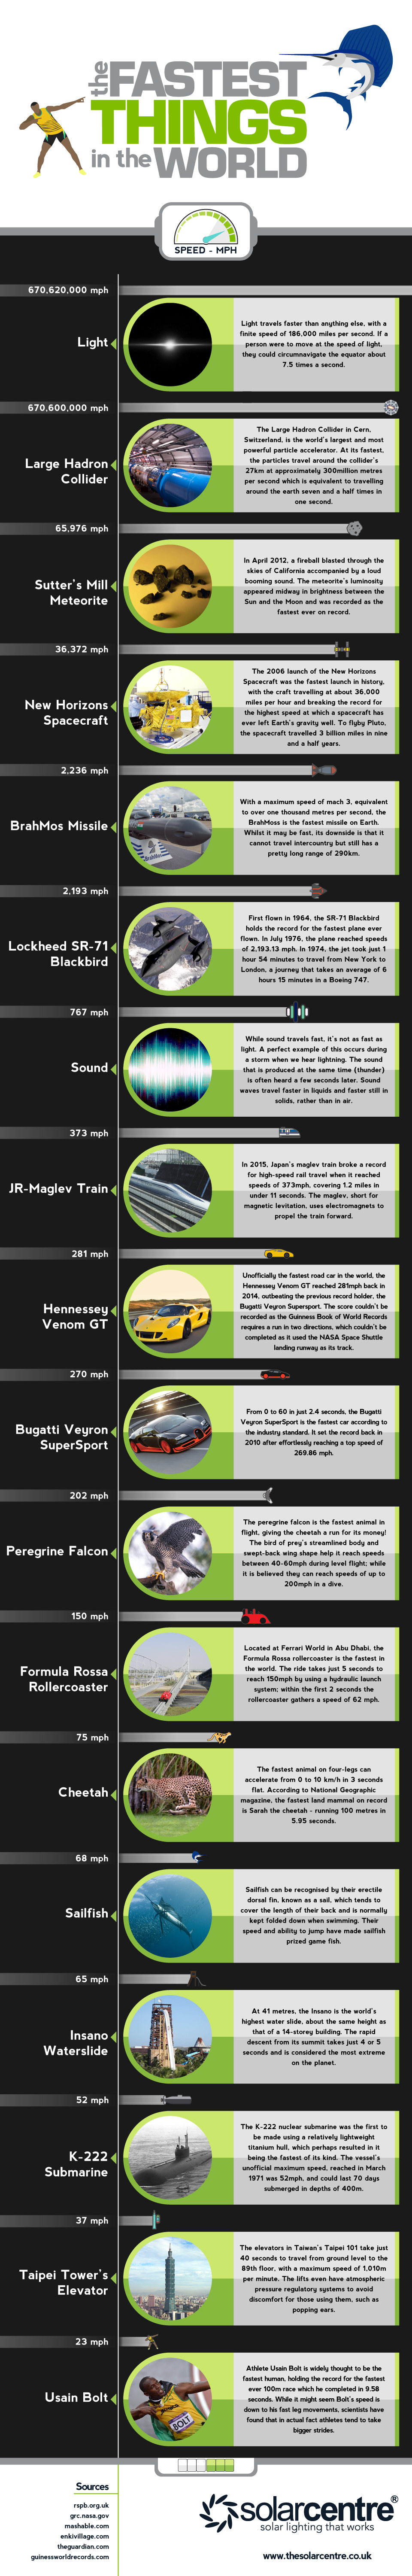 For Speed-oholics: The Comprehensive List of 'Fast'! - Infographic